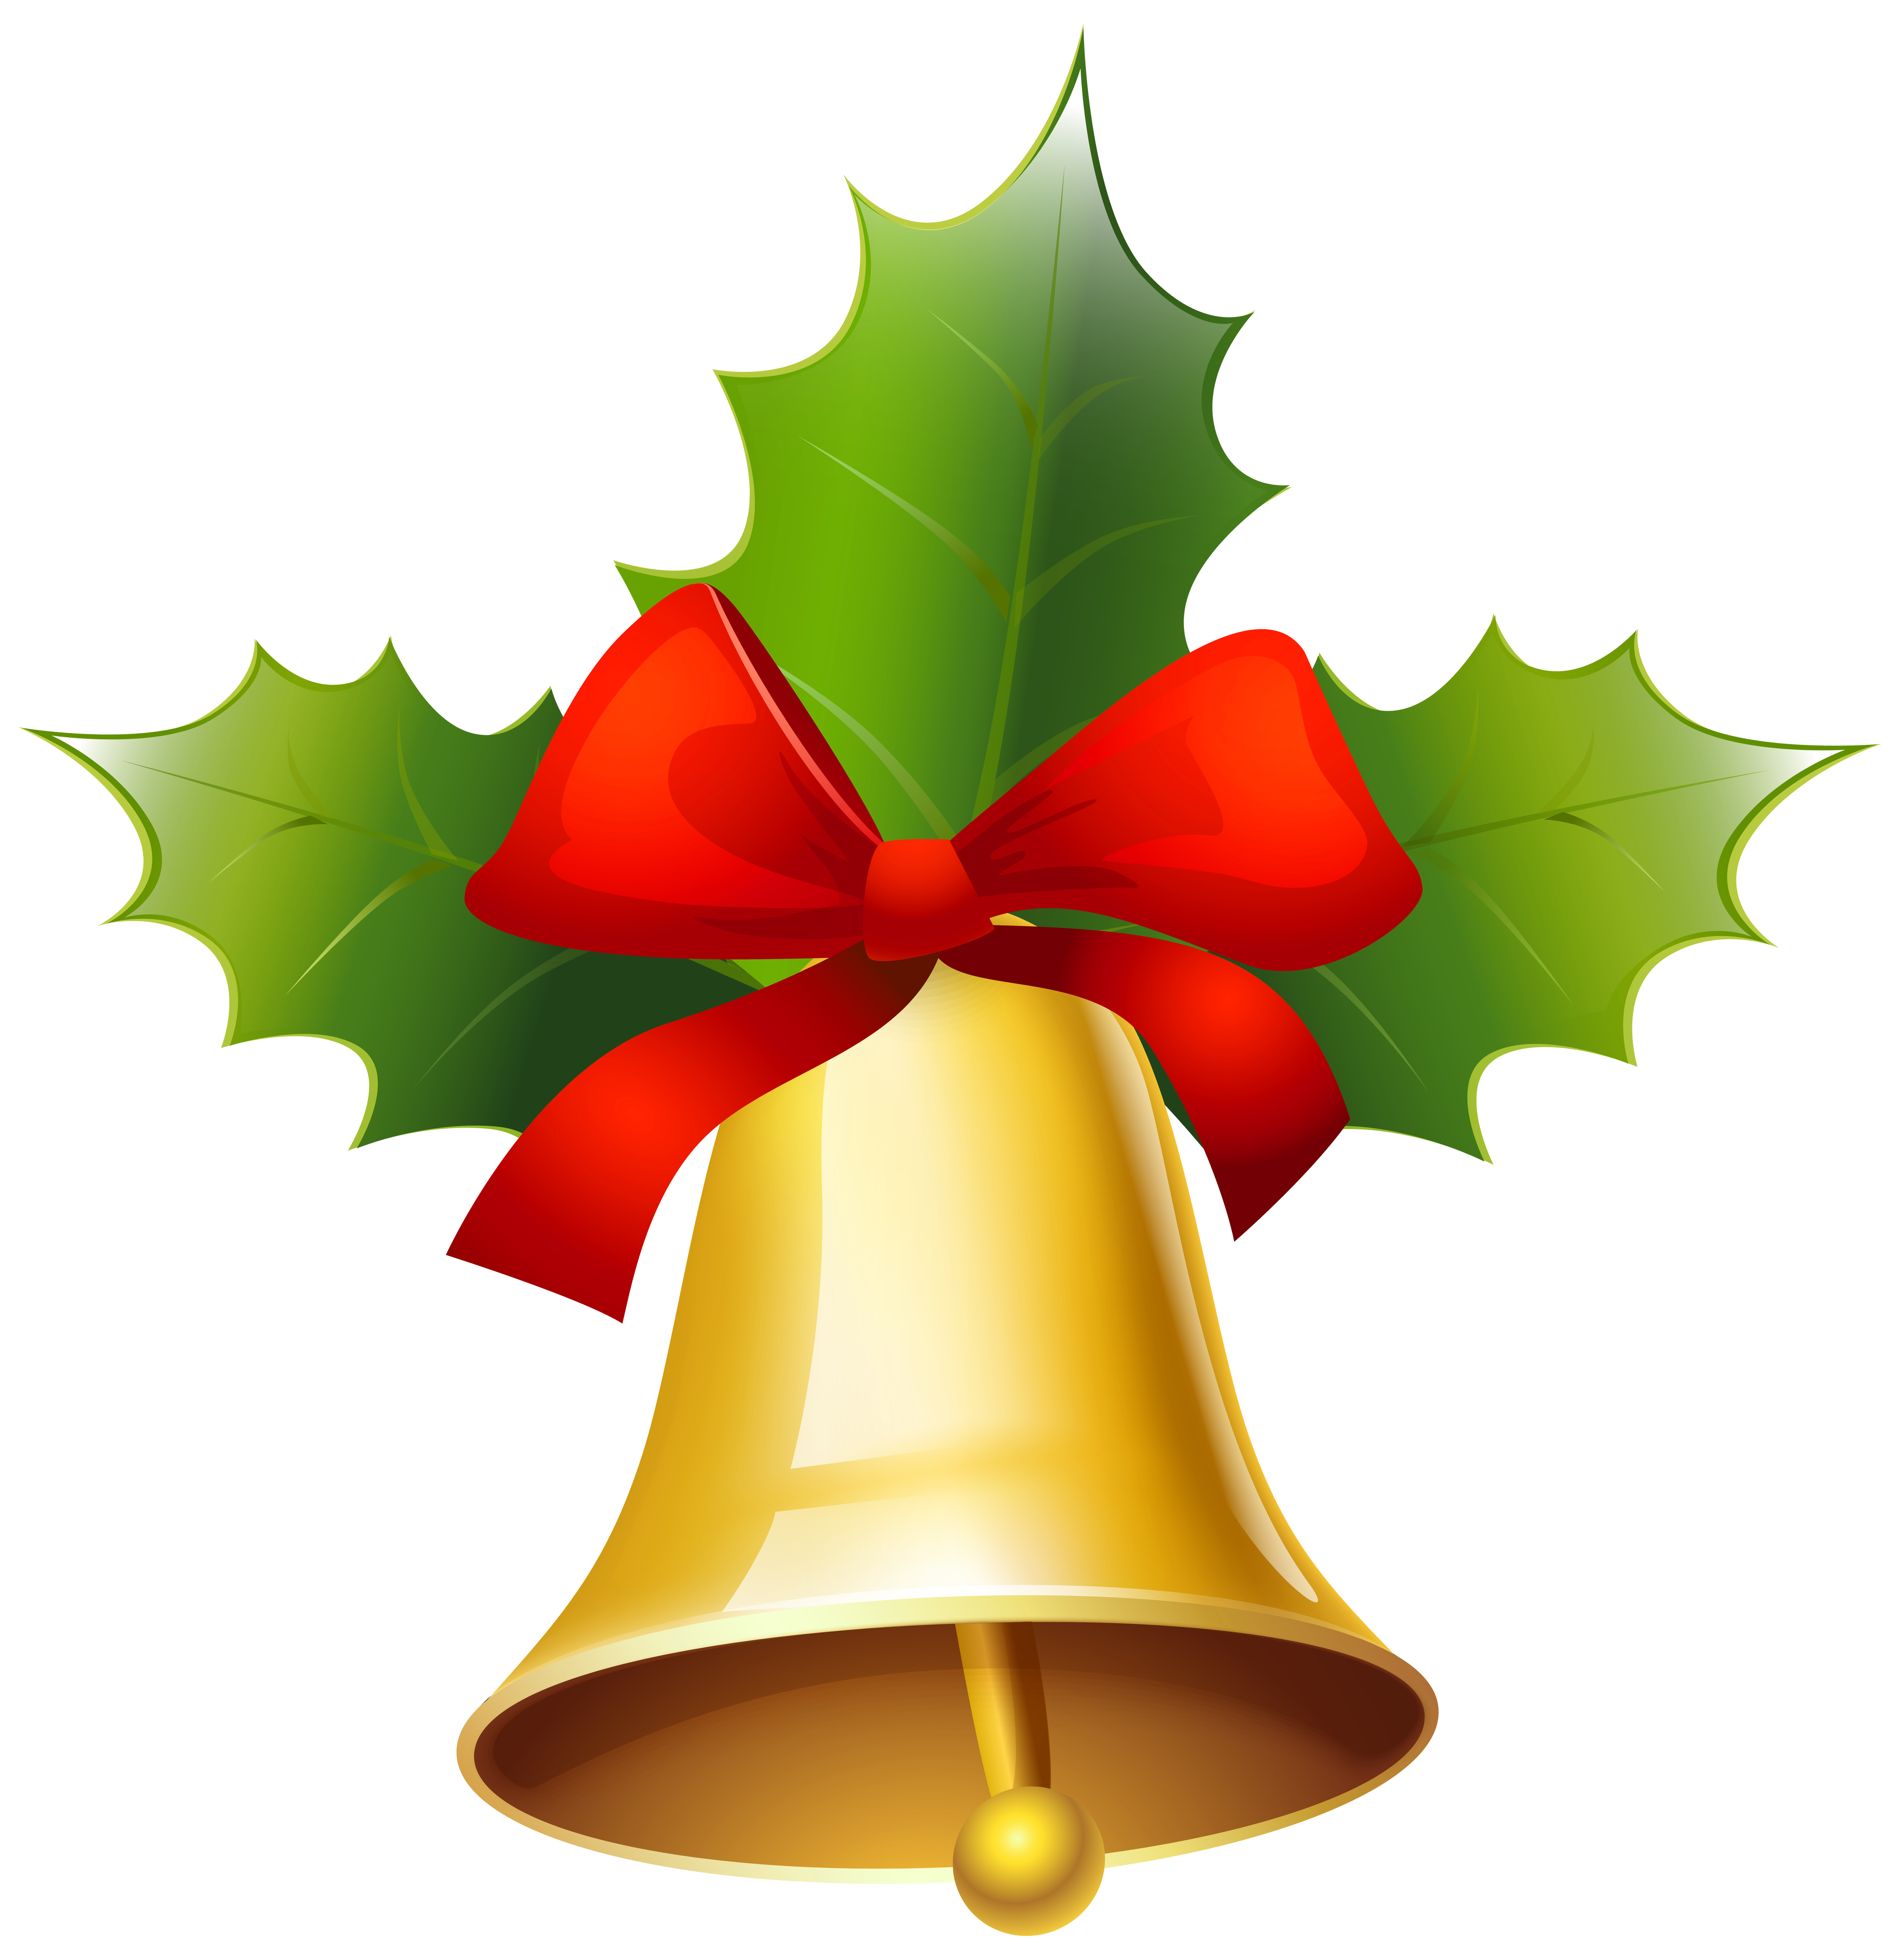 Golden Christmas Bell PNG Clipart Image.